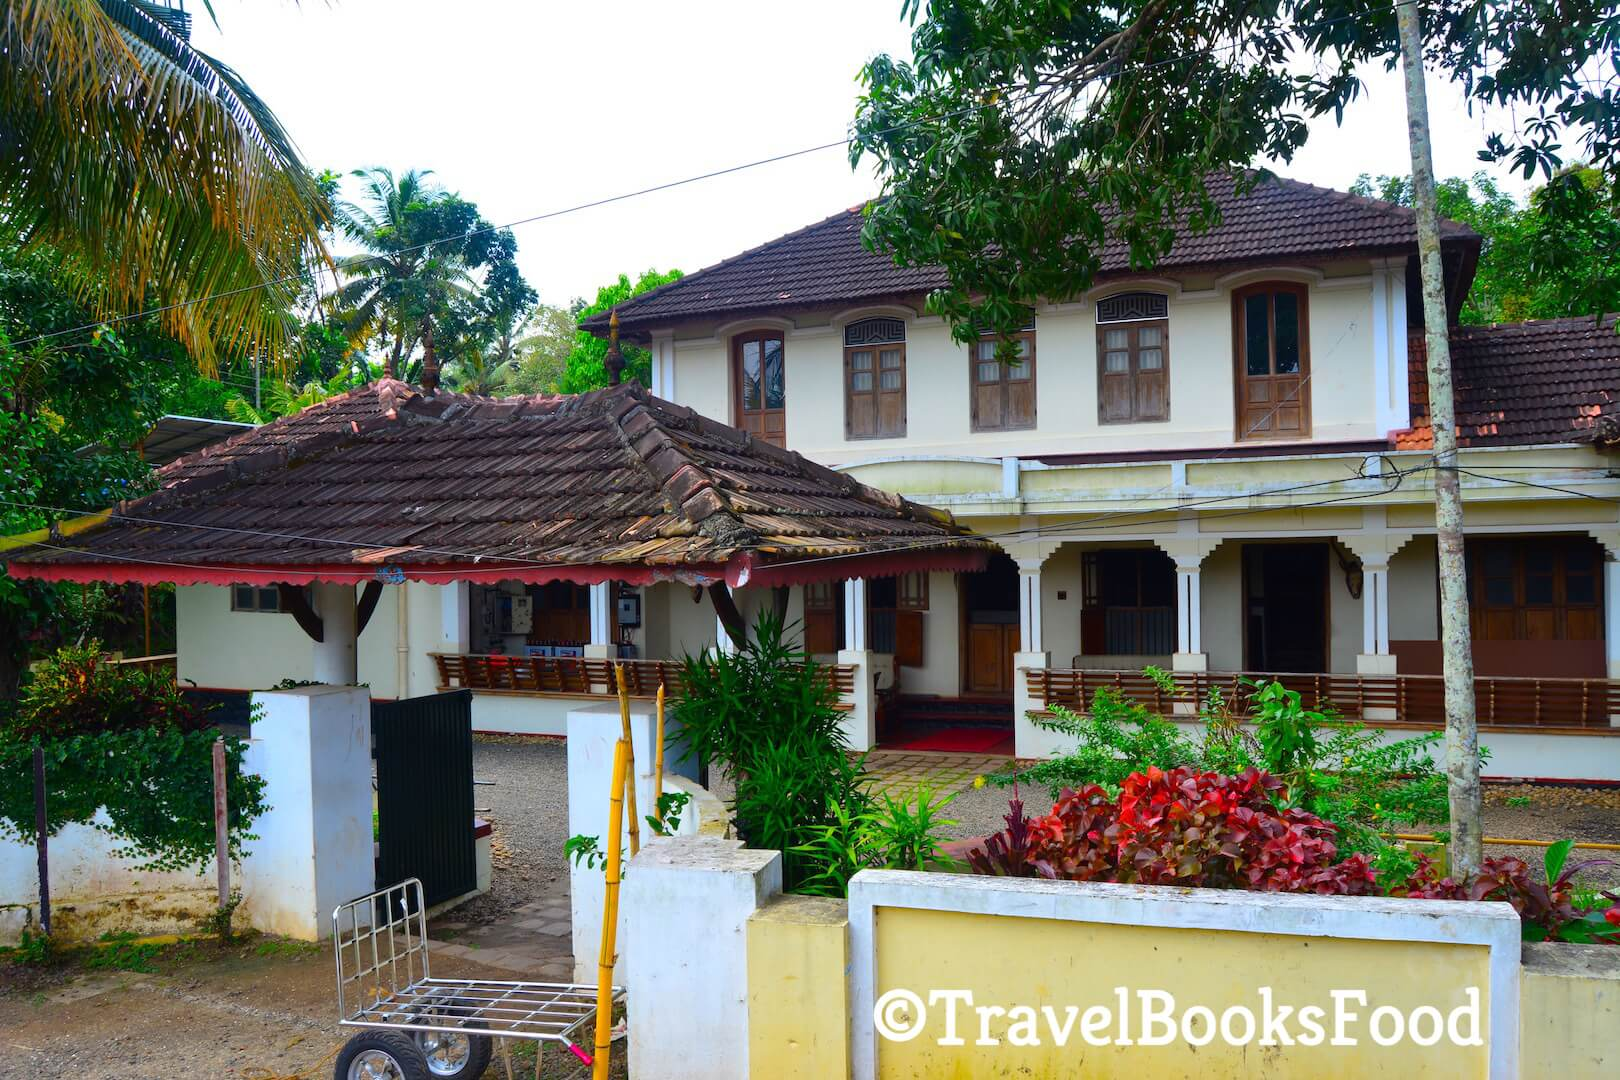 Photo of a traditional house/resort in Kerala, India